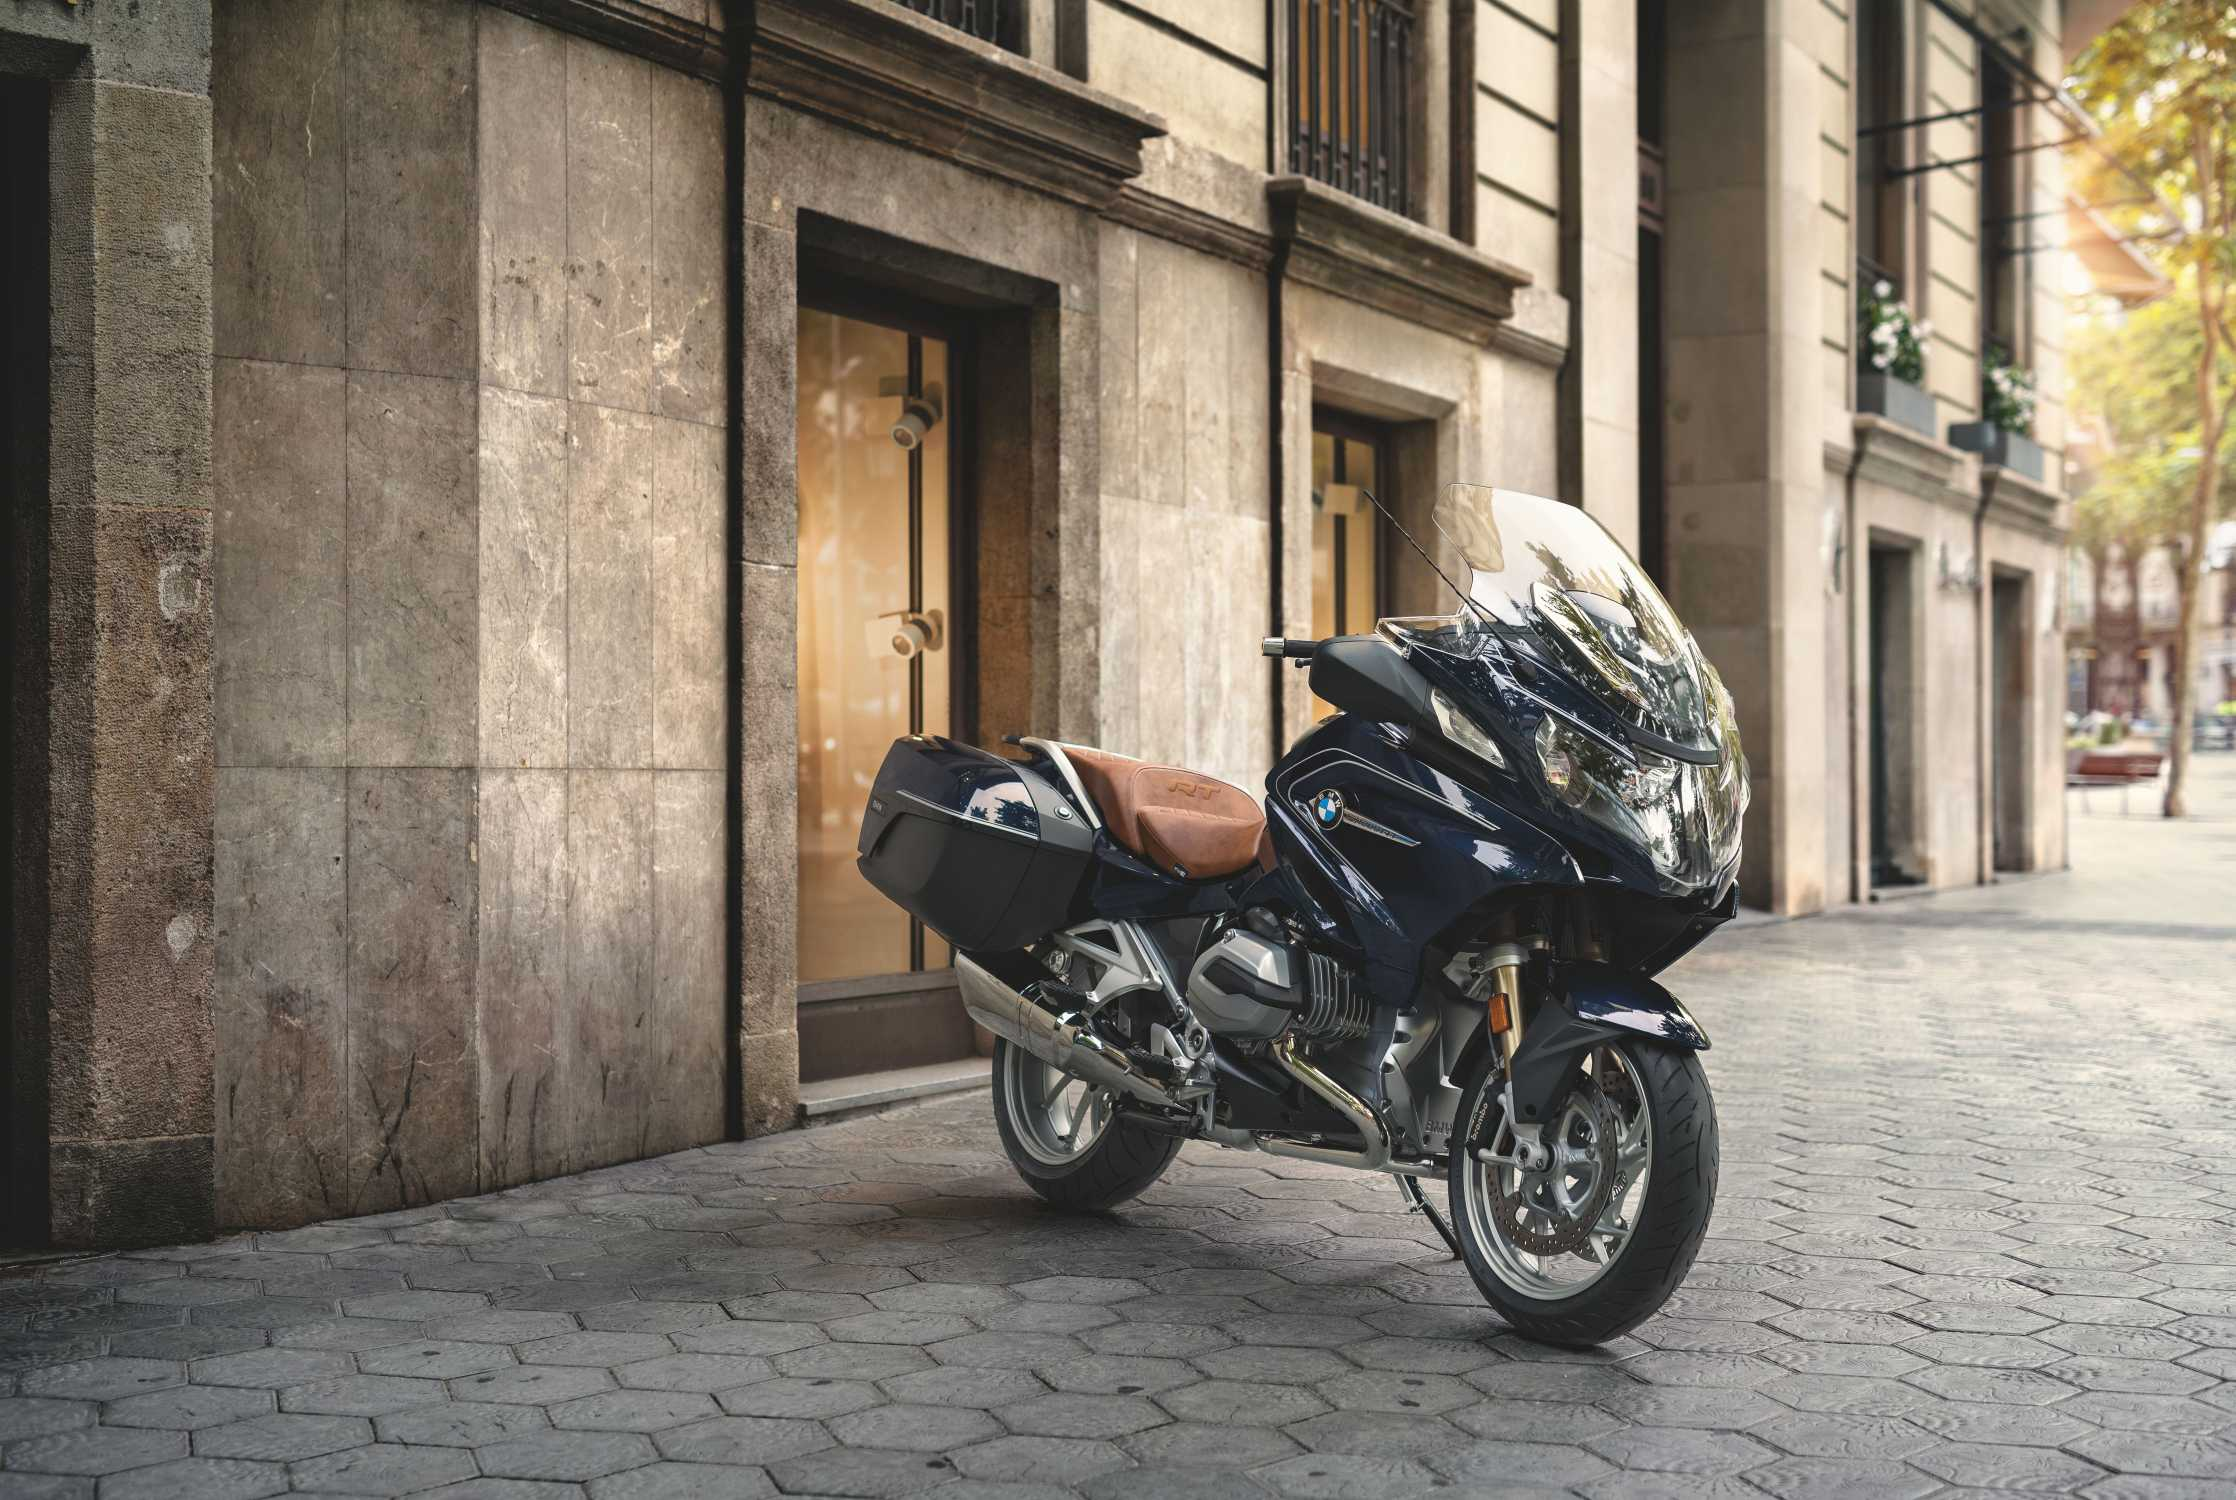 Bmw R 1200 Rt In Special Paint Finish Blueplanet Metallic With